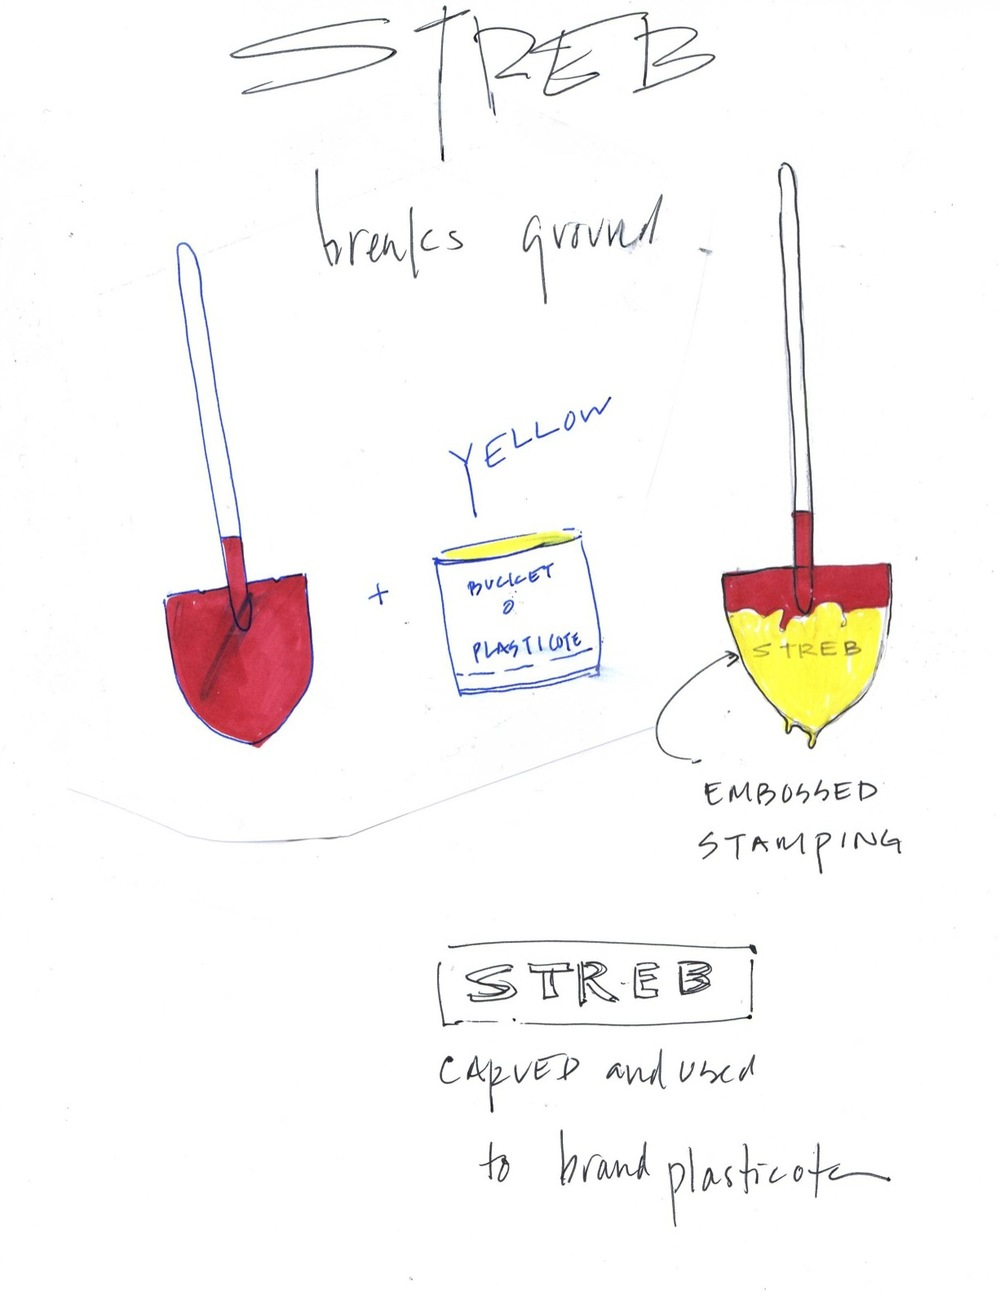 Proposed shovel design for the ceremony.  Laser cut STREB logo to be glued onto red shovel and then dipped in yellow plasticoat.